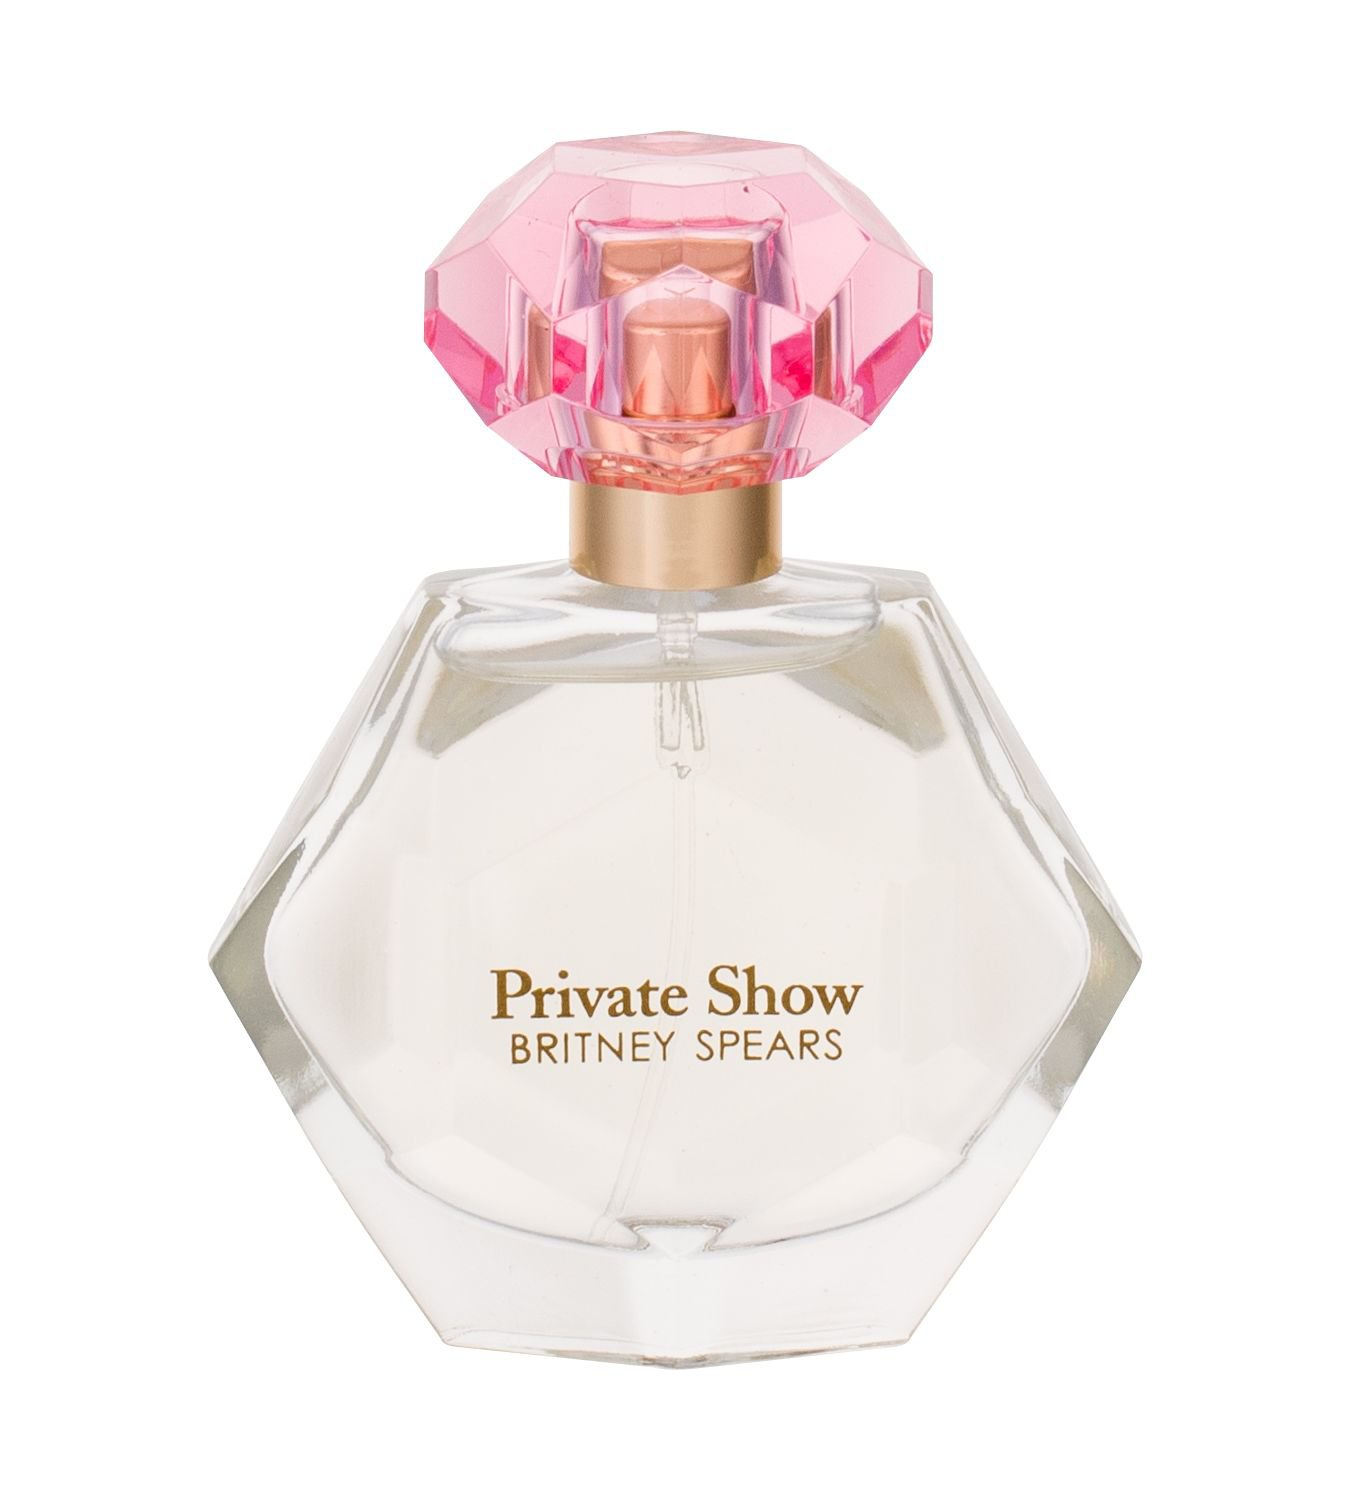 Britney Spears Private Show, Parfumovaná voda 30ml